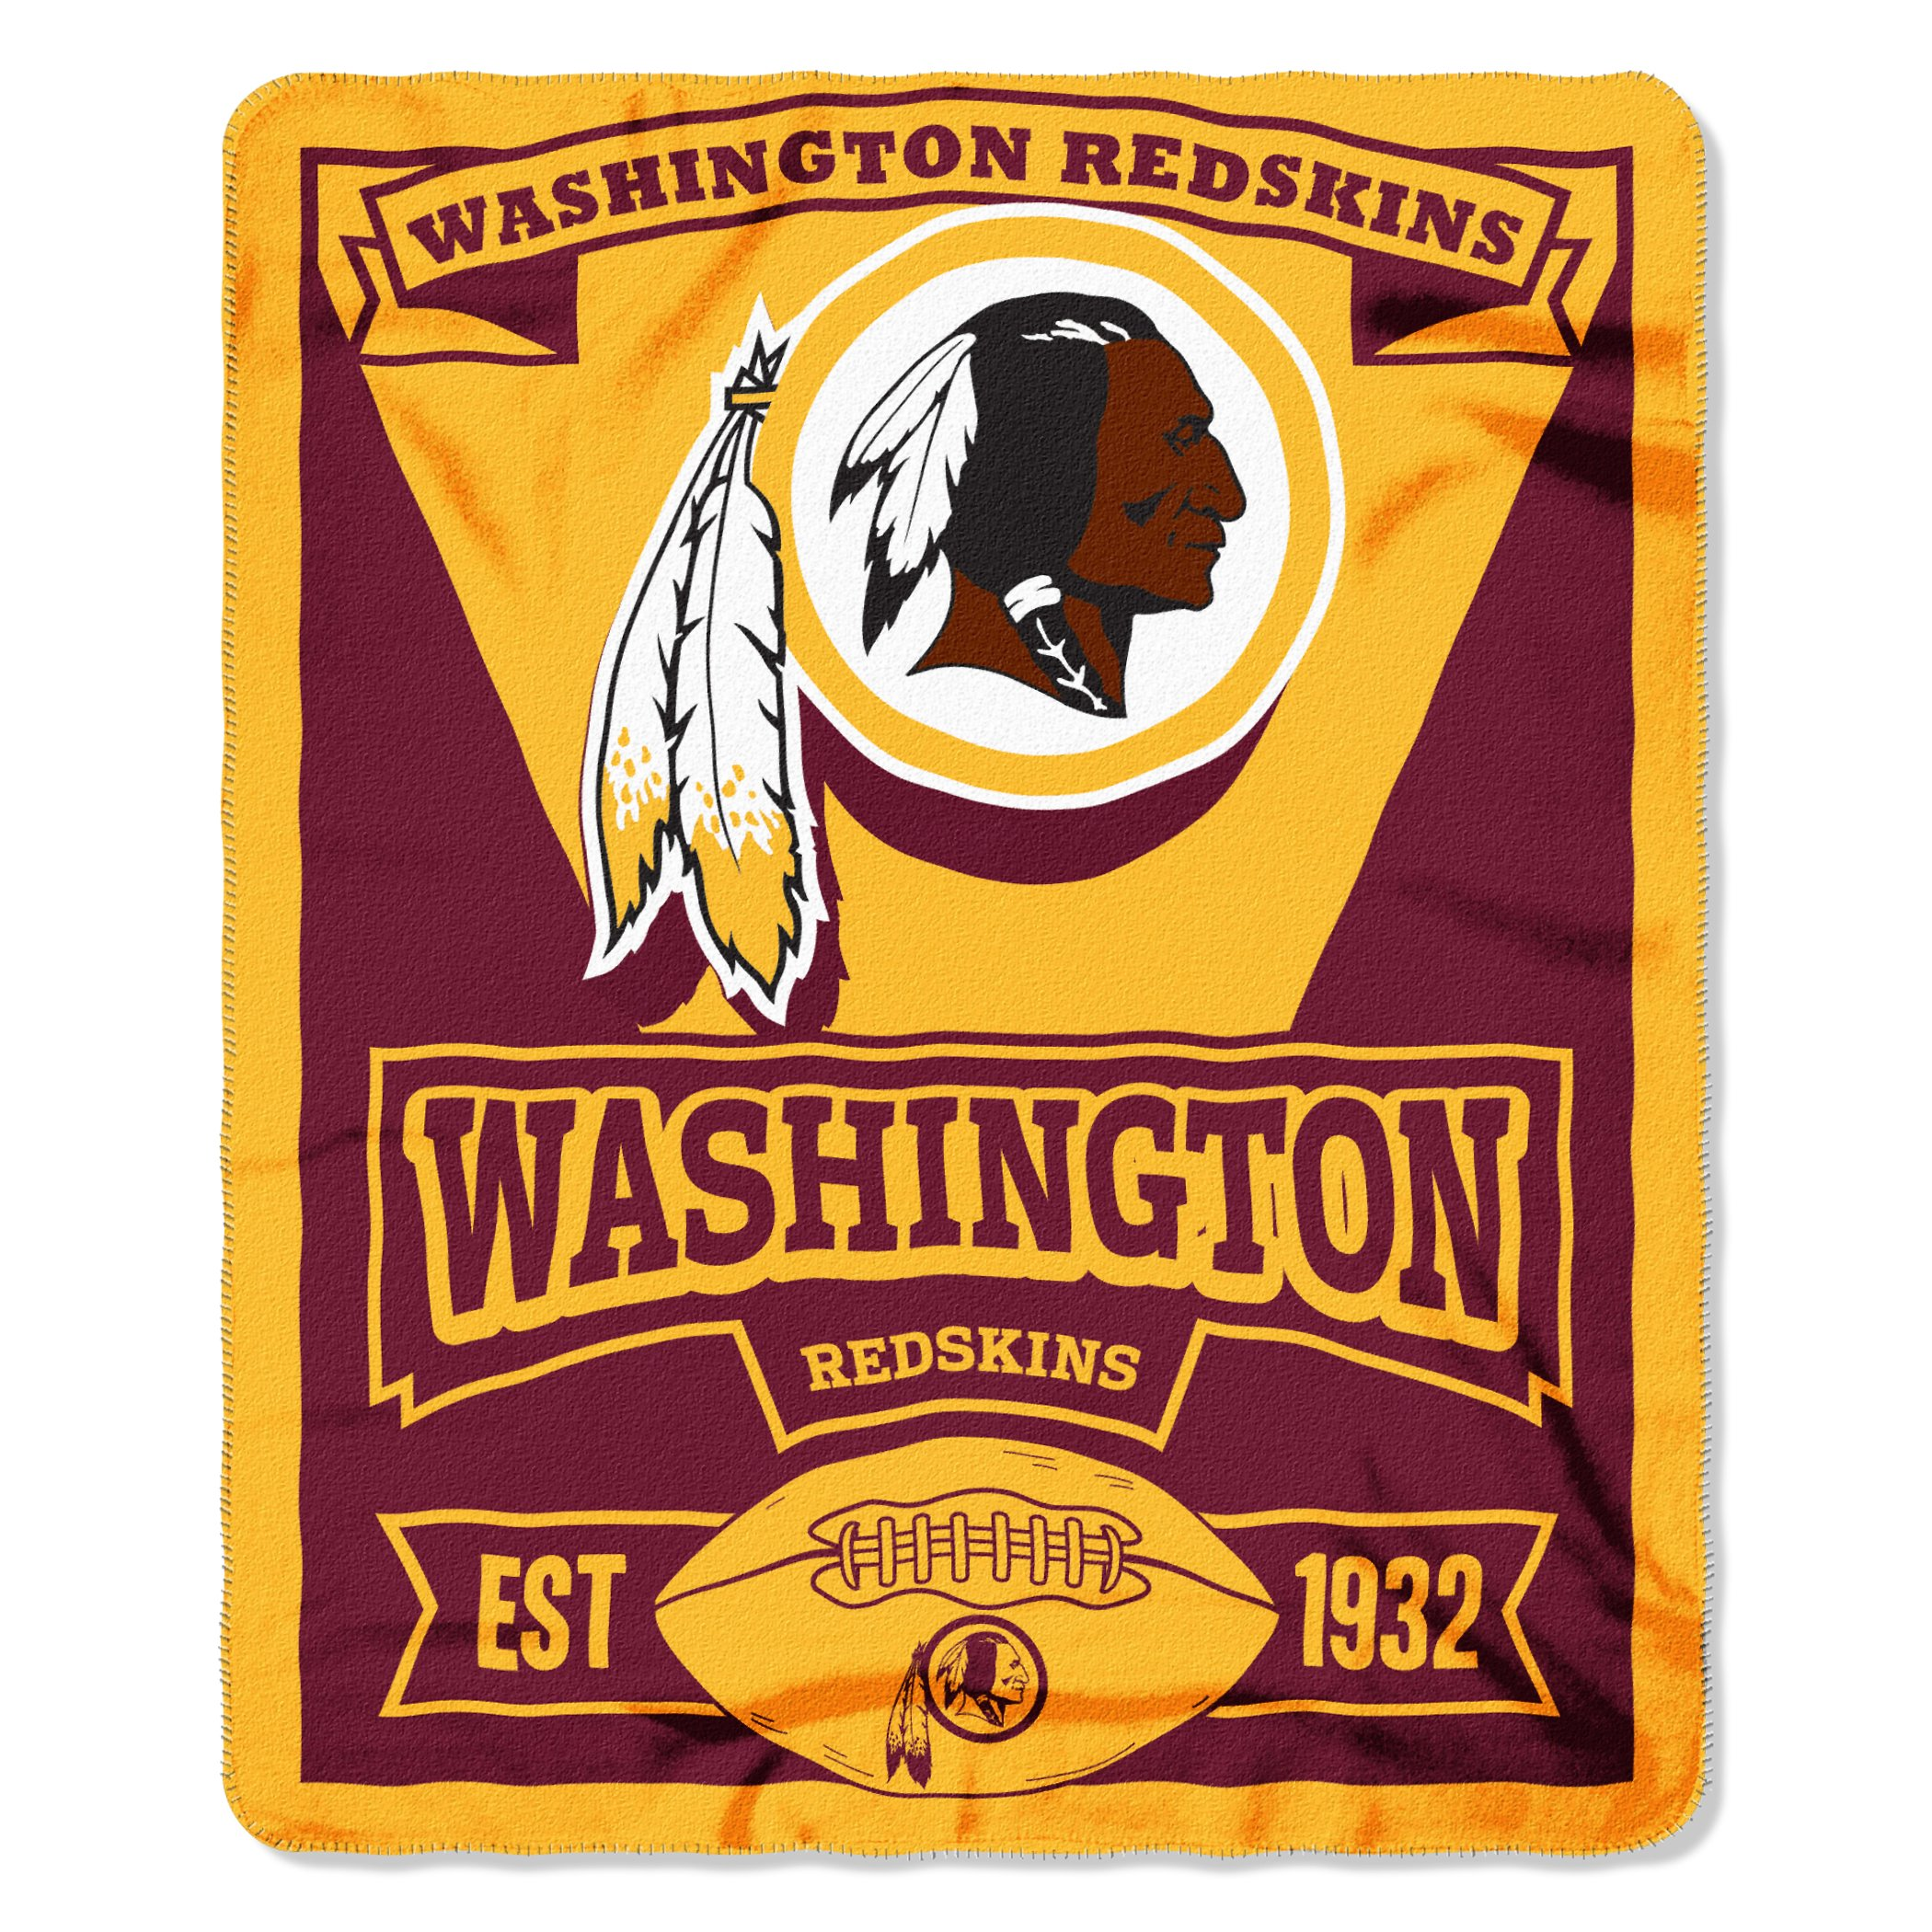 Officially Licensed NFL Washington Redskins ''Marque'' Printed Fleece Throw Blanket, 50'' x 60'', Multi Color by The Northwest Company